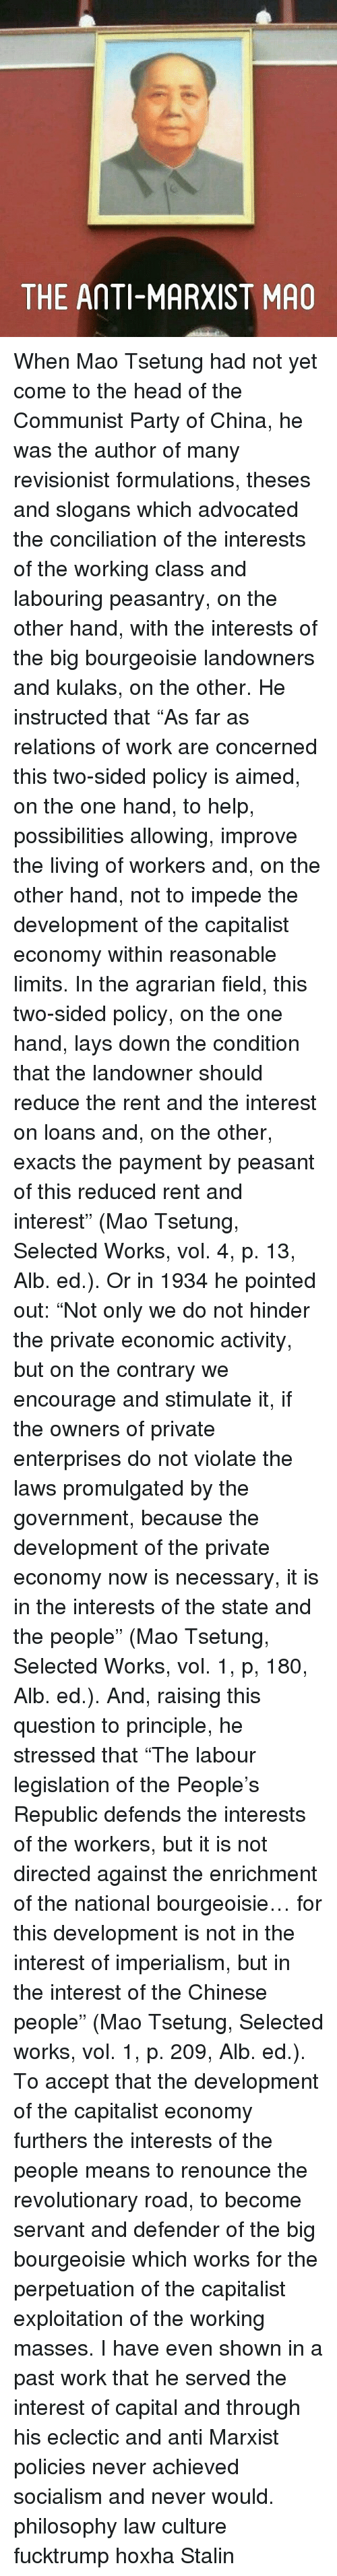 """Memes, Enterprise, and 🤖: THE AMTI-MARXIST MAO When Mao Tsetung had not yet come to the head of the Communist Party of China, he was the author of many revisionist formulations, theses and slogans which advocated the conciliation of the interests of the working class and labouring peasantry, on the other hand, with the interests of the big bourgeoisie landowners and kulaks, on the other. He instructed that """"As far as relations of work are concerned this two-sided policy is aimed, on the one hand, to help, possibilities allowing, improve the living of workers and, on the other hand, not to impede the development of the capitalist economy within reasonable limits. In the agrarian field, this two-sided policy, on the one hand, lays down the condition that the landowner should reduce the rent and the interest on loans and, on the other, exacts the payment by peasant of this reduced rent and interest"""" (Mao Tsetung, Selected Works, vol. 4, p. 13, Alb. ed.). Or in 1934 he pointed out: """"Not only we do not hinder the private economic activity, but on the contrary we encourage and stimulate it, if the owners of private enterprises do not violate the laws promulgated by the government, because the development of the private economy now is necessary, it is in the interests of the state and the people"""" (Mao Tsetung, Selected Works, vol. 1, p, 180, Alb. ed.). And, raising this question to principle, he stressed that """"The labour legislation of the People's Republic defends the interests of the workers, but it is not directed against the enrichment of the national bourgeoisie… for this development is not in the interest of imperialism, but in the interest of the Chinese people"""" (Mao Tsetung, Selected works, vol. 1, p. 209, Alb. ed.). To accept that the development of the capitalist economy furthers the interests of the people means to renounce the revolutionary road, to become servant and defender of the big bourgeoisie which works for the perpetuation of the capitalist exploitatio"""